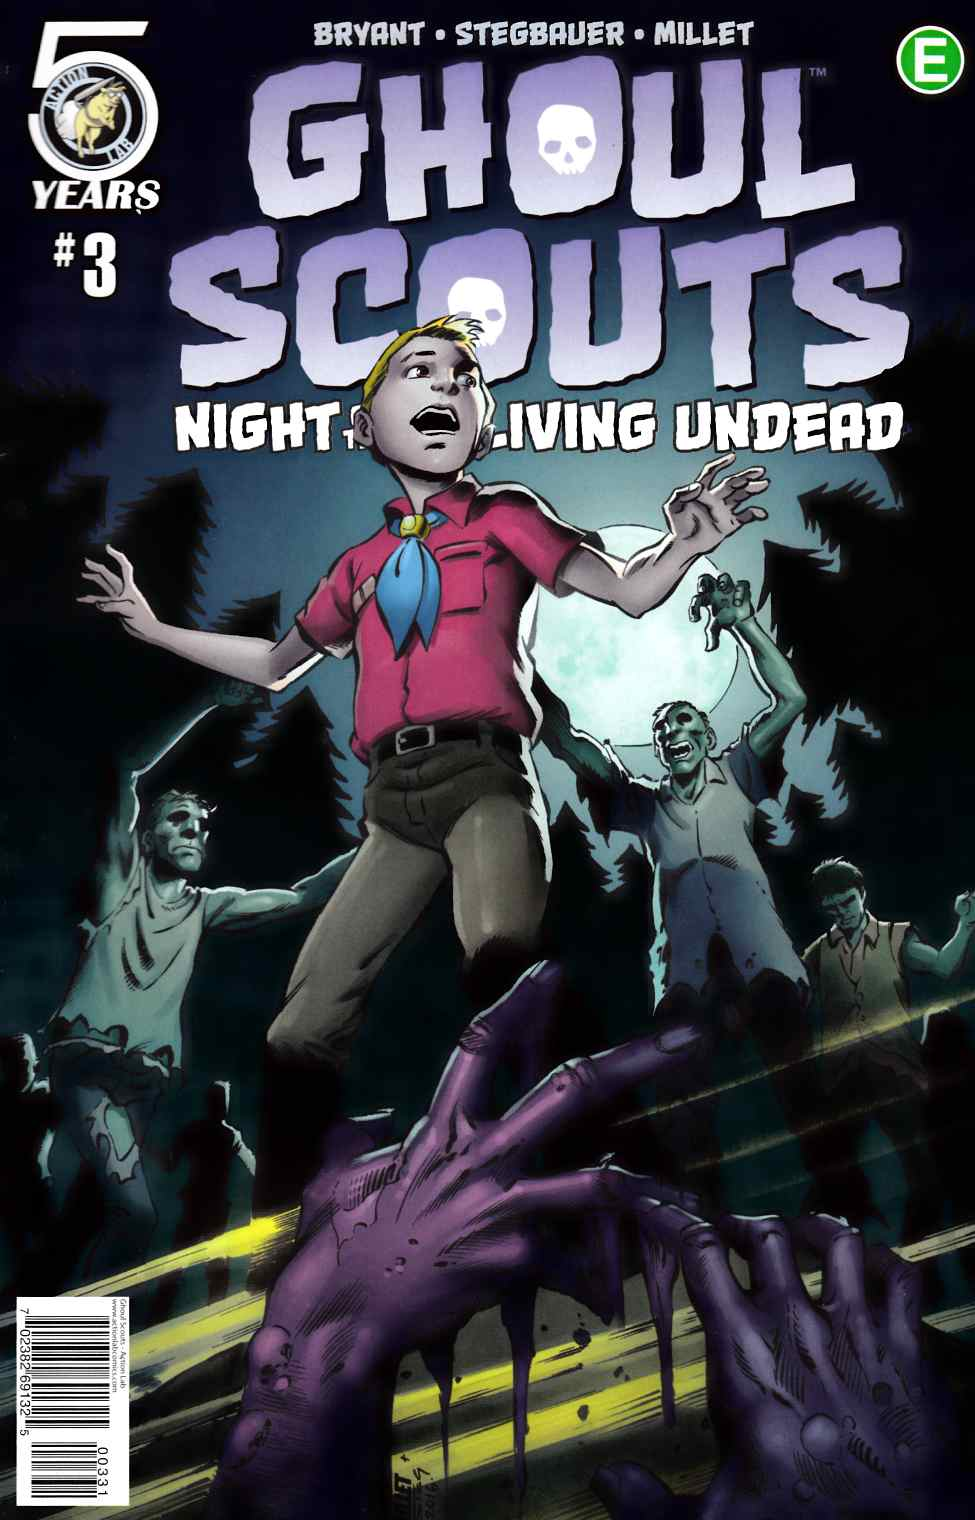 Ghoul Scouts Night of the Unliving Undead #3 Cover C [Action Lab Comic] THUMBNAIL